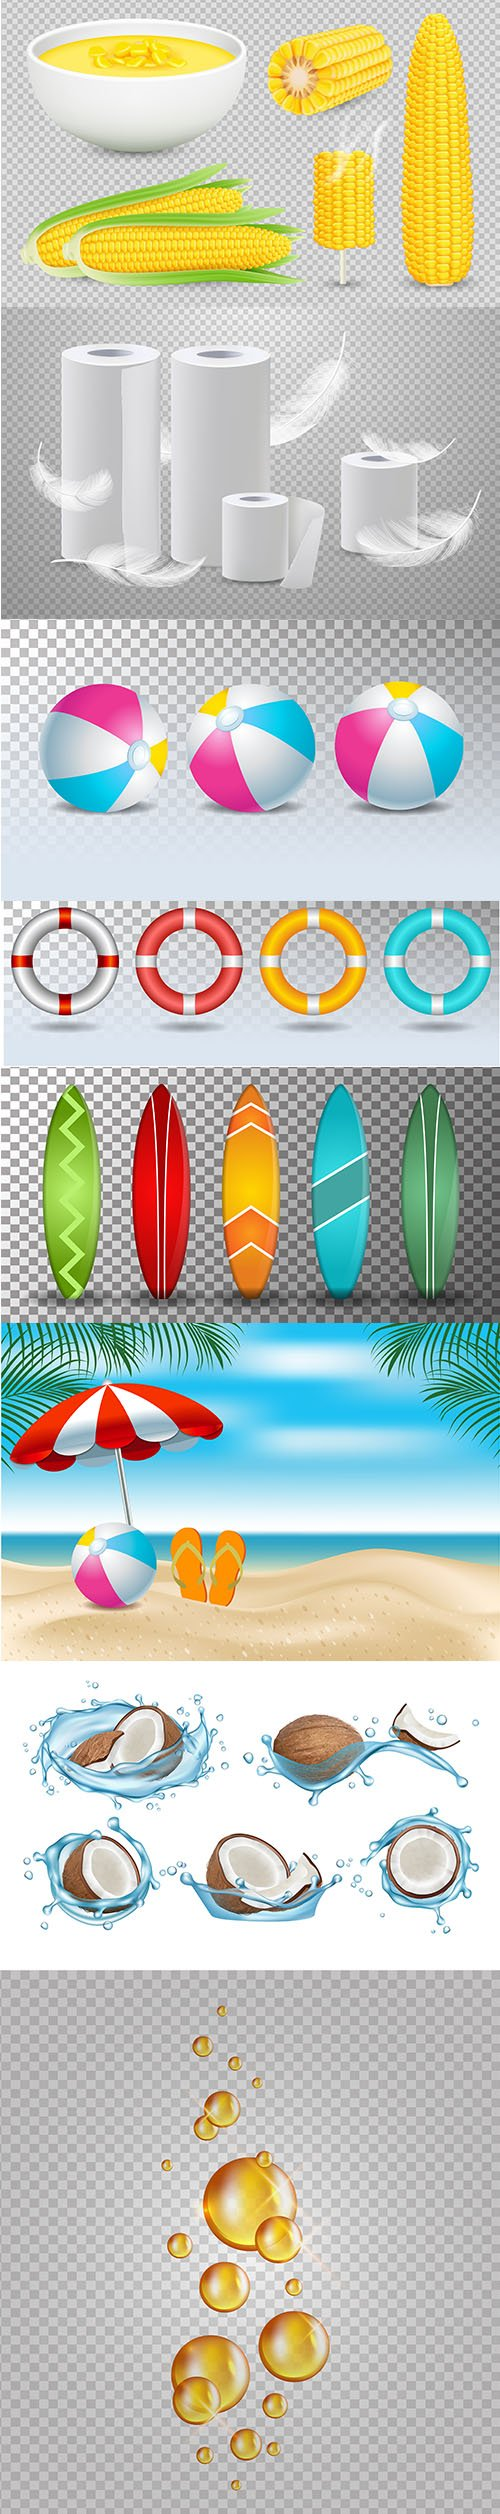 Realistic Isolated Object and Summer Vector Illustrations